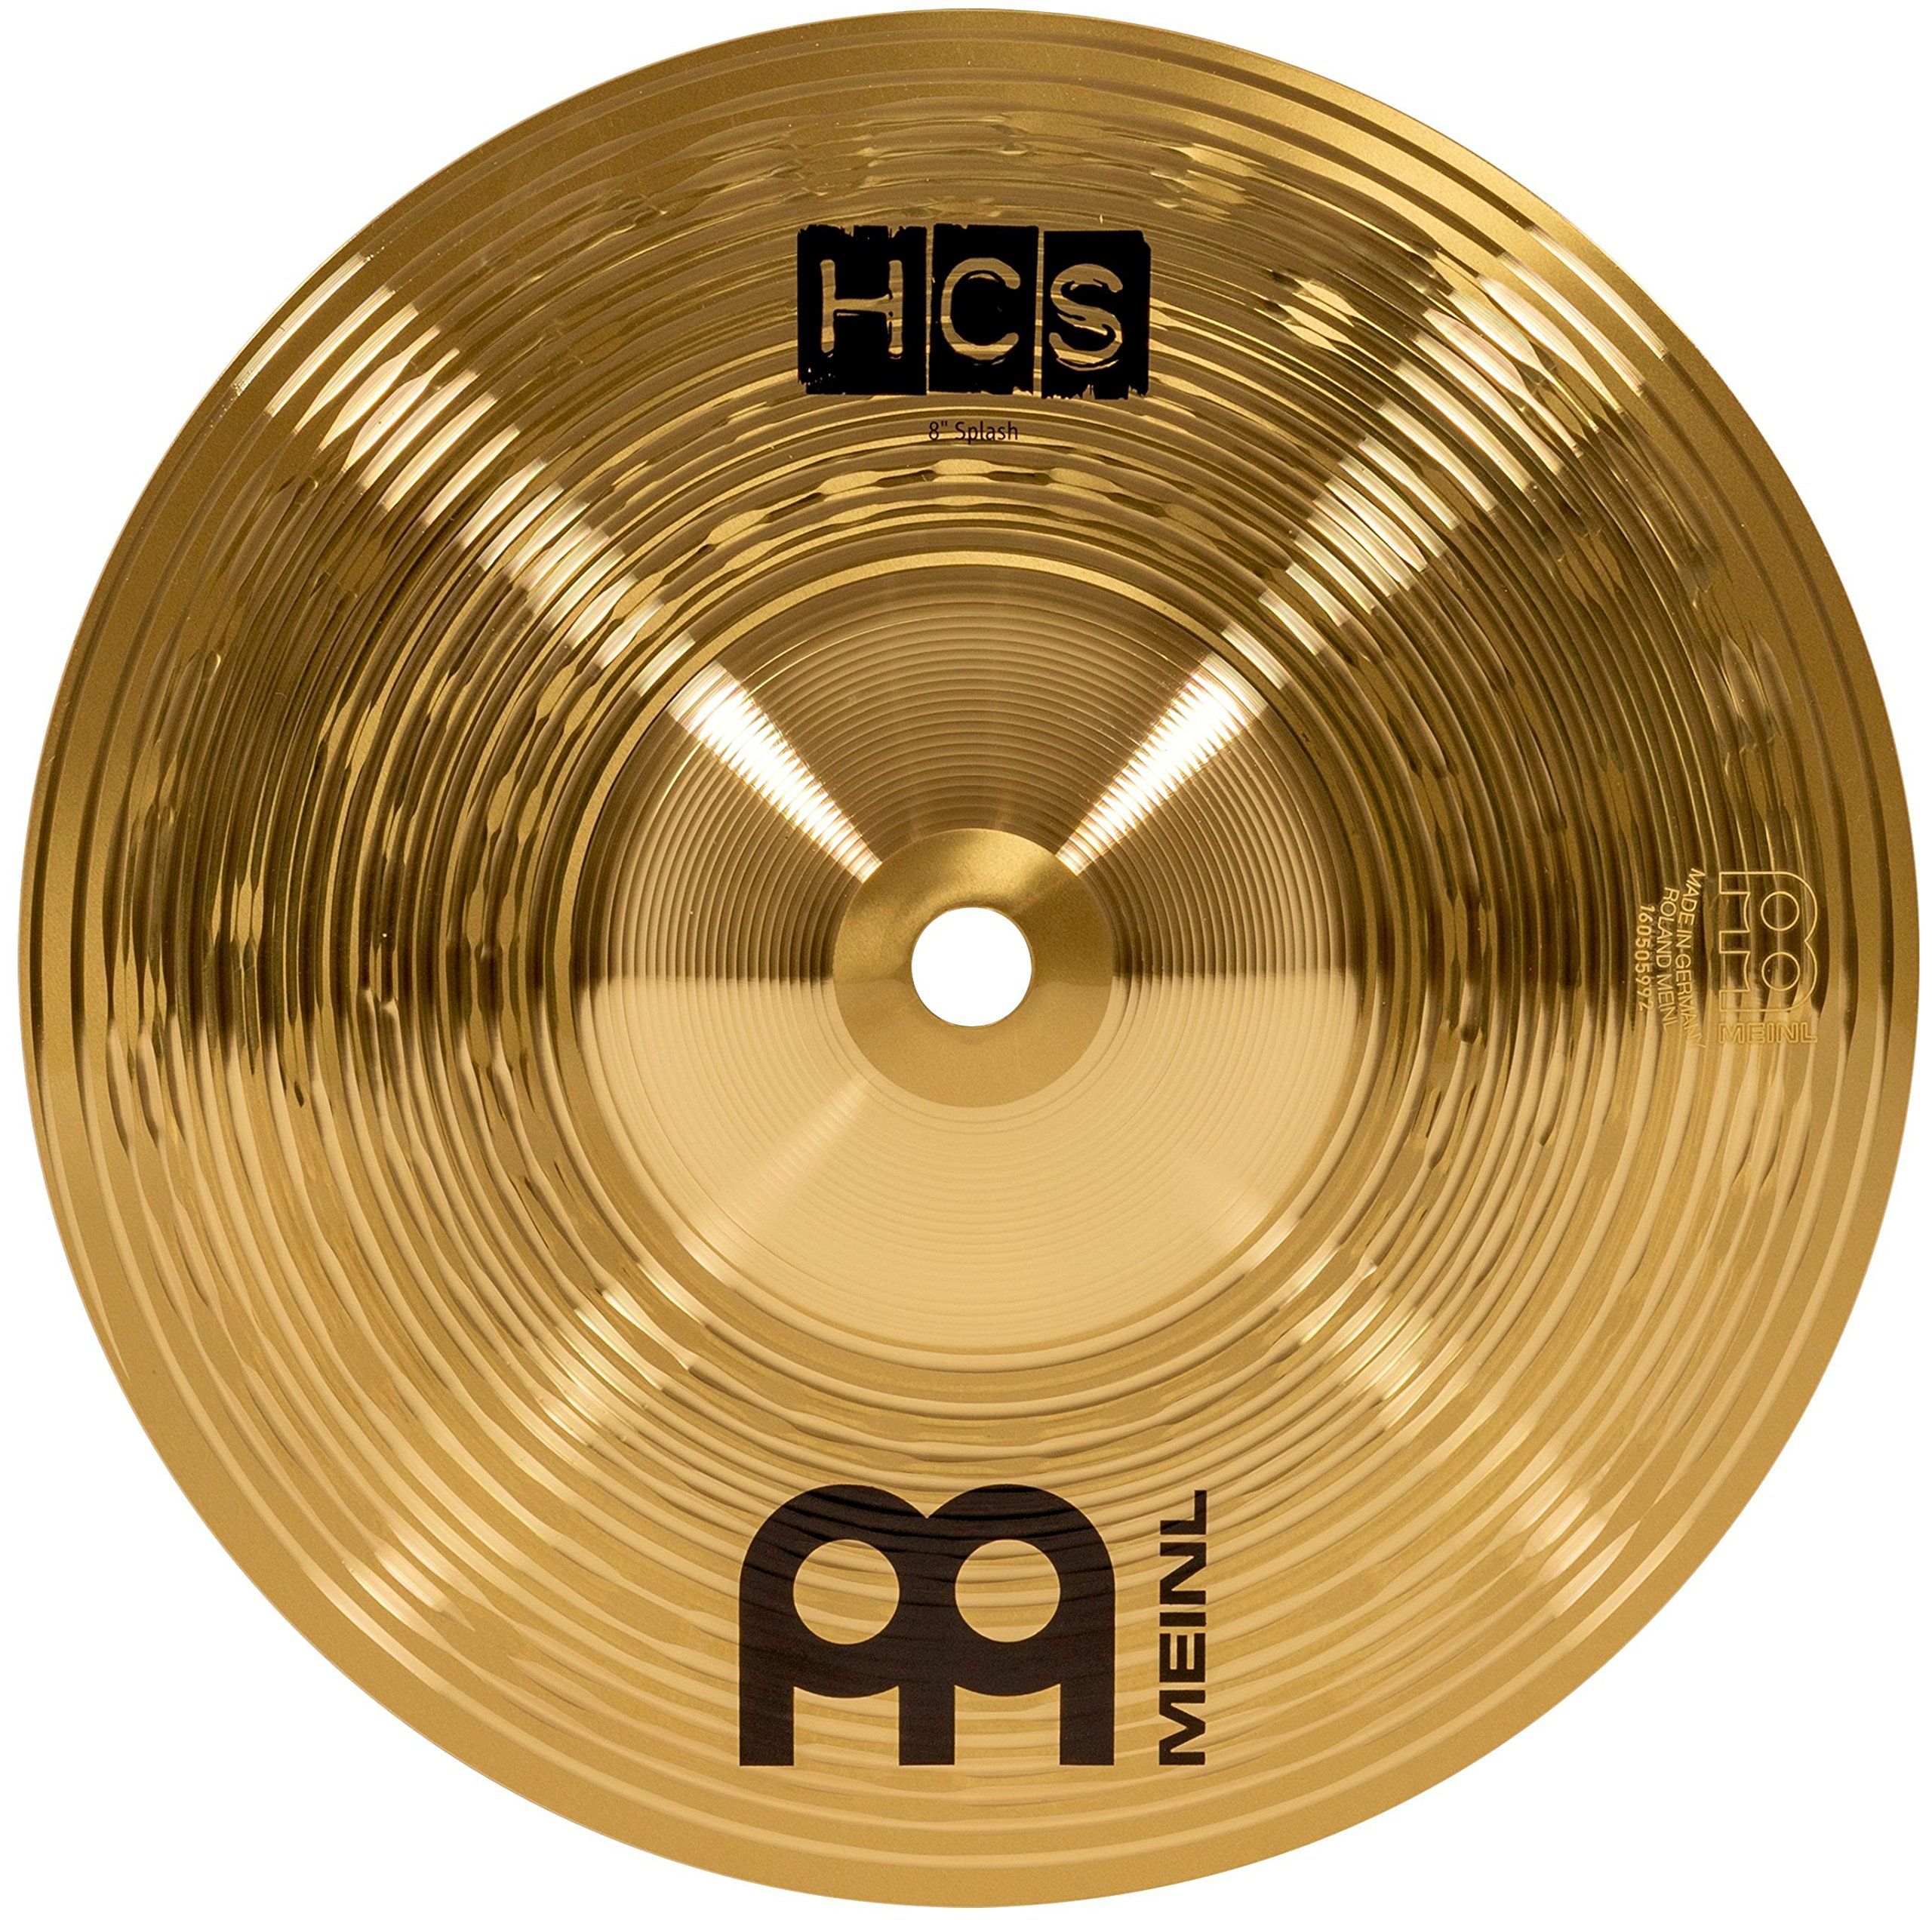 "Meinl 8"" Splash Cymbal – HCS Traditional Finish Brass for Drum Set, Made In Germany, 2-YEAR WARRANTY (HCS8S)"